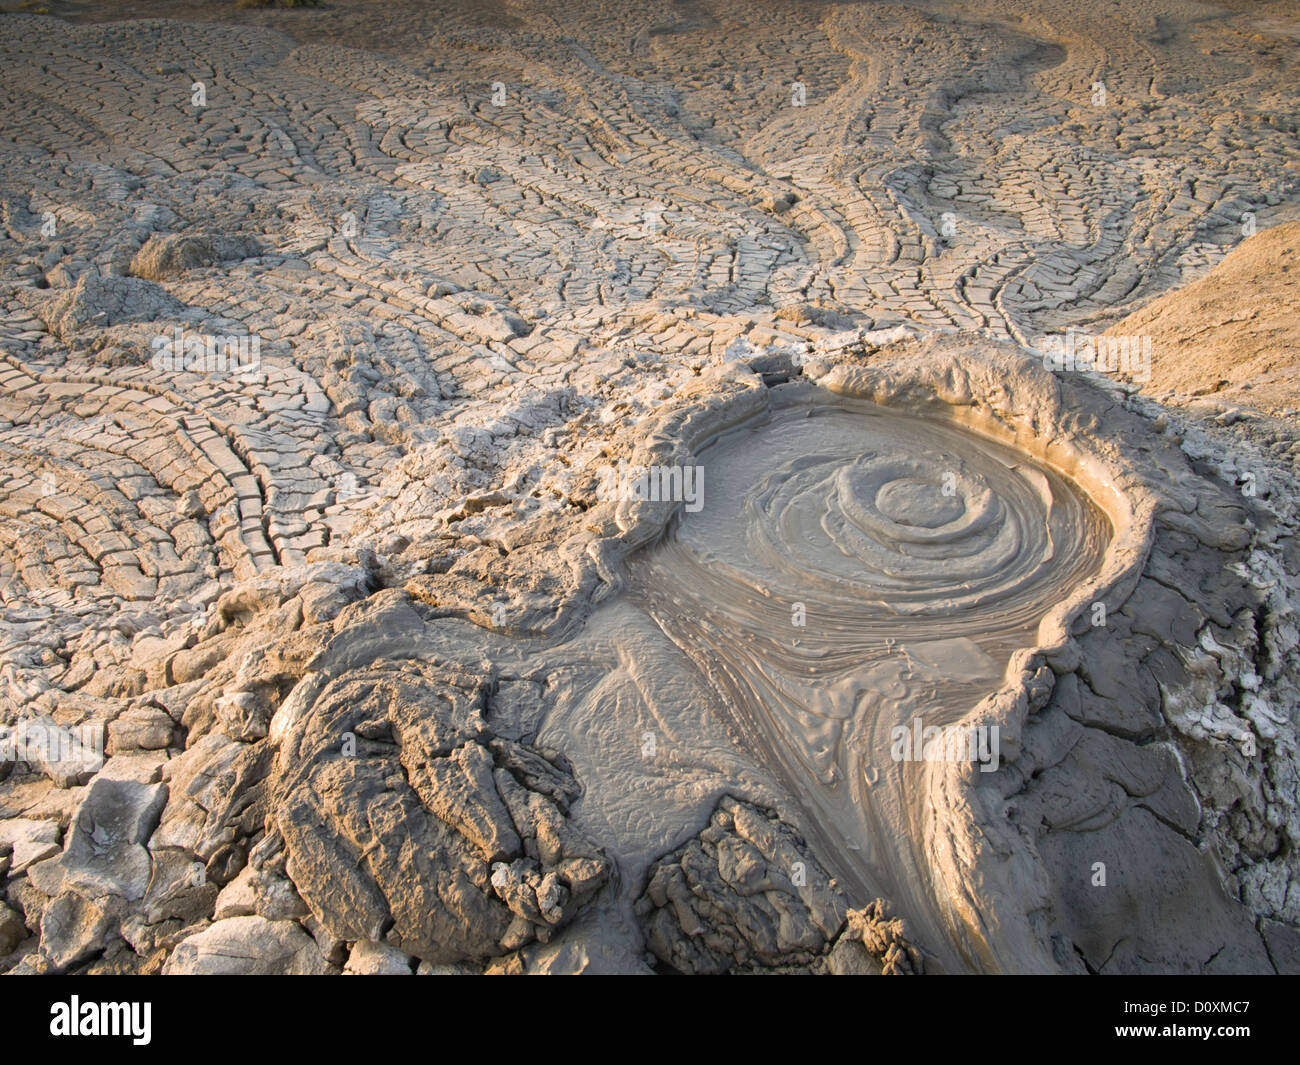 Azerbaijan, East, Asia, Caucasus, Quobustan, mud volcano, liquidly, mud, slime, slushy, mud hole, mud holes, volcano, Stock Photo